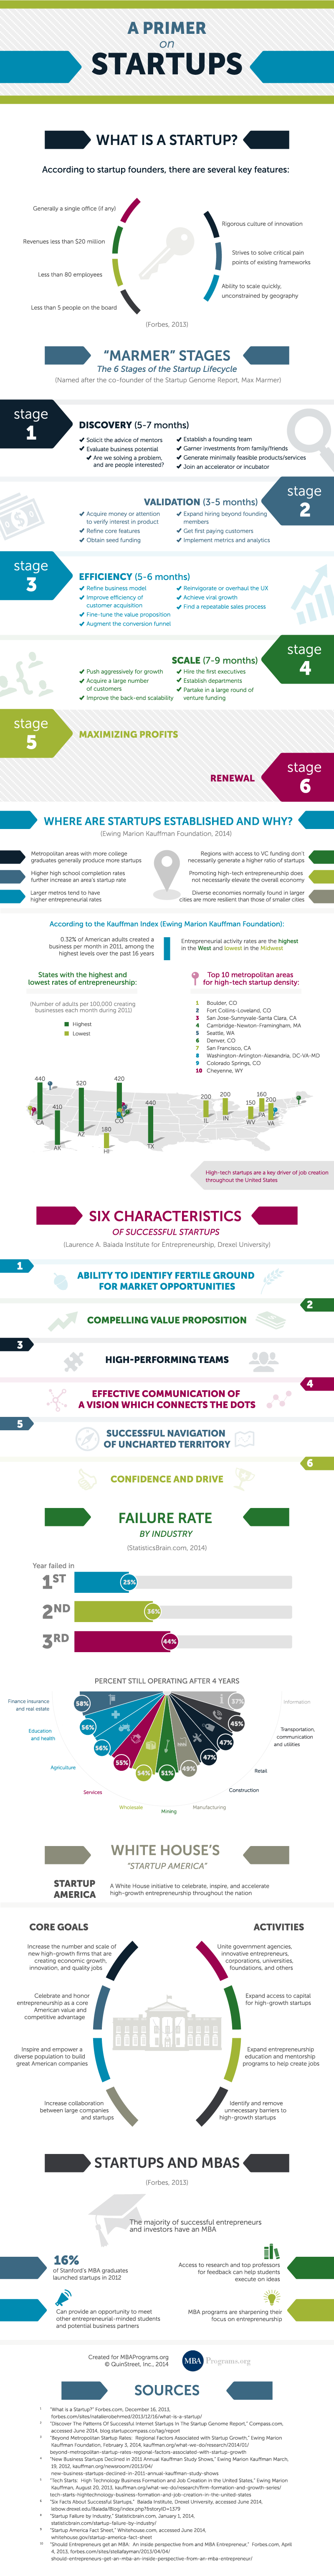 Characteristics-of-Successful-Startups